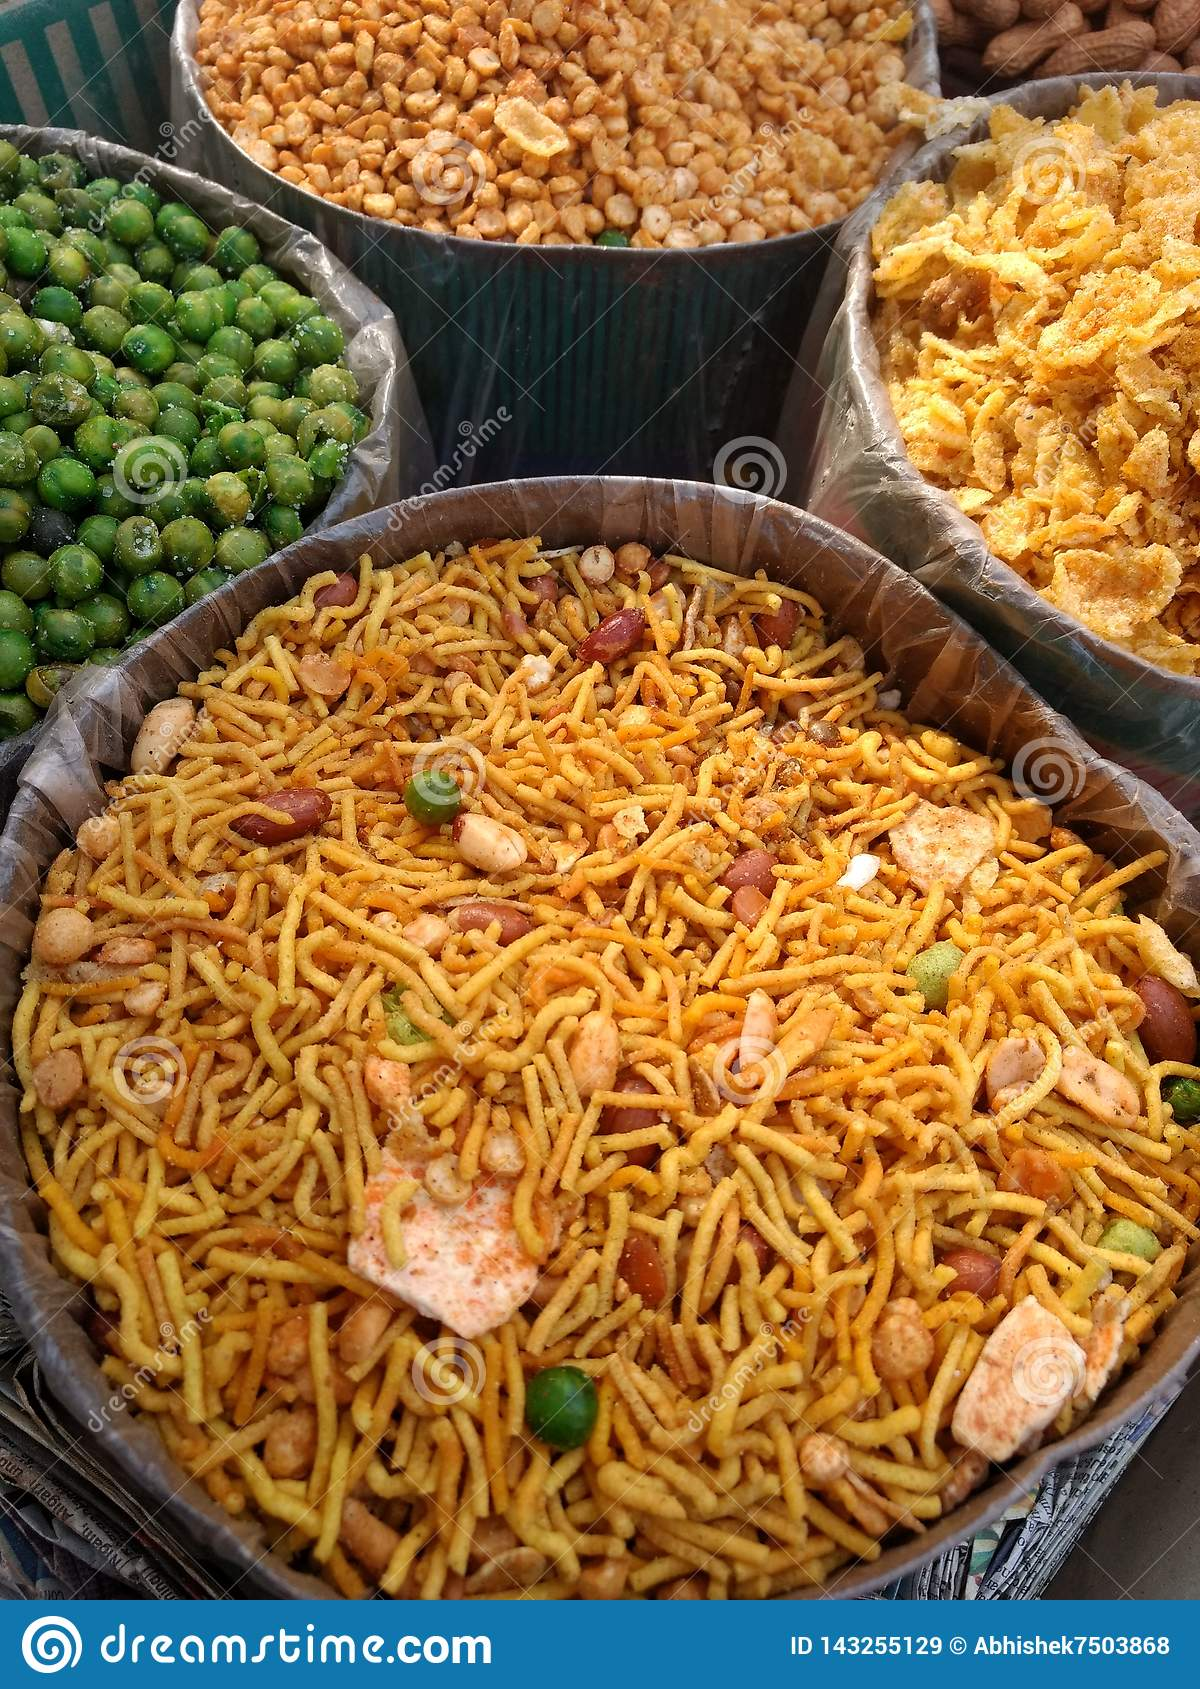 Different types of Indian namkeen and savory snacks selling on the market